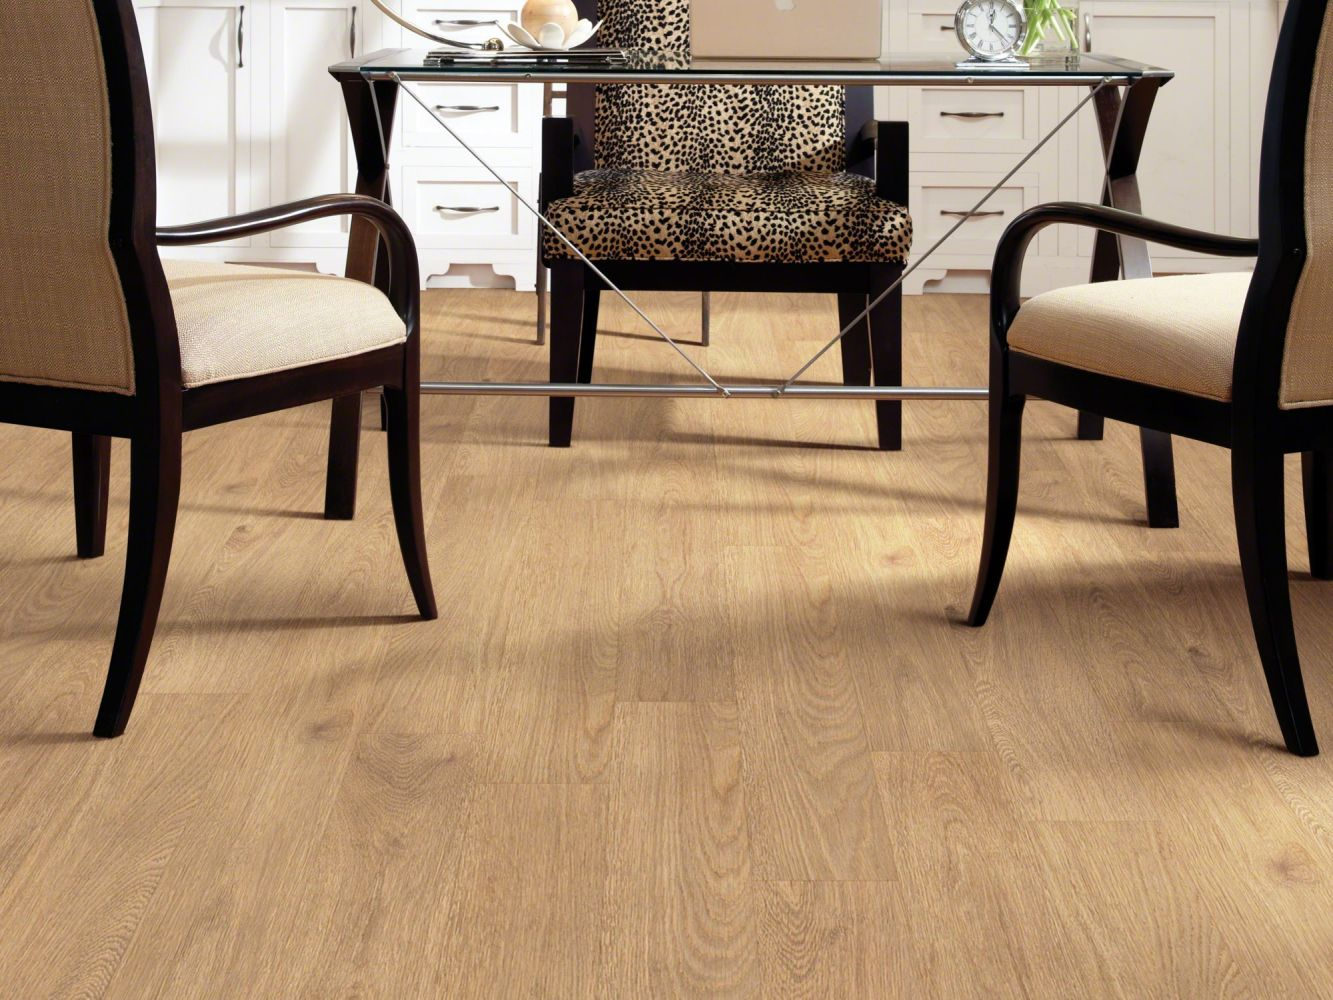 Shaw Floors Resilient Property Solutions Modernality 6 Plank City Center 00247_VPS41